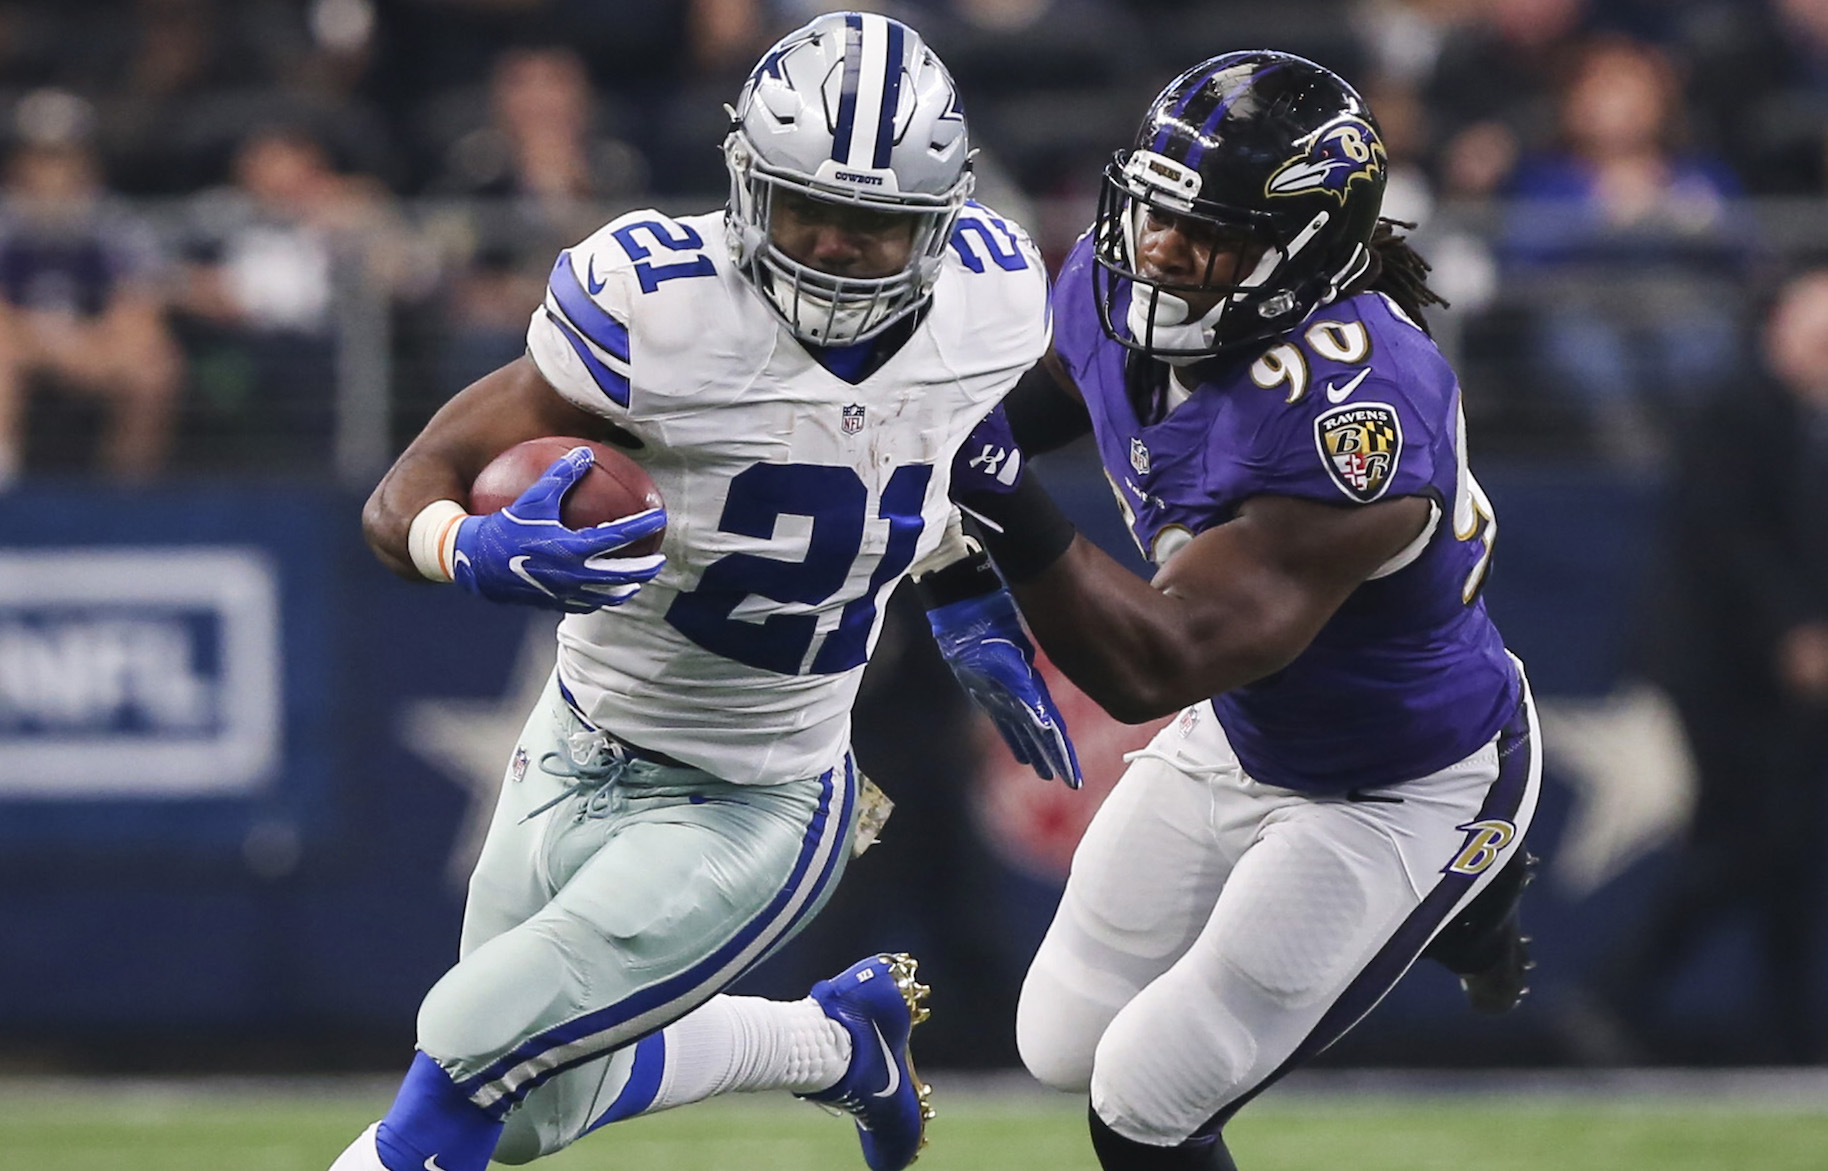 Why are the Dallas Cowboys and Baltimore Ravens playing on Tuesday night?